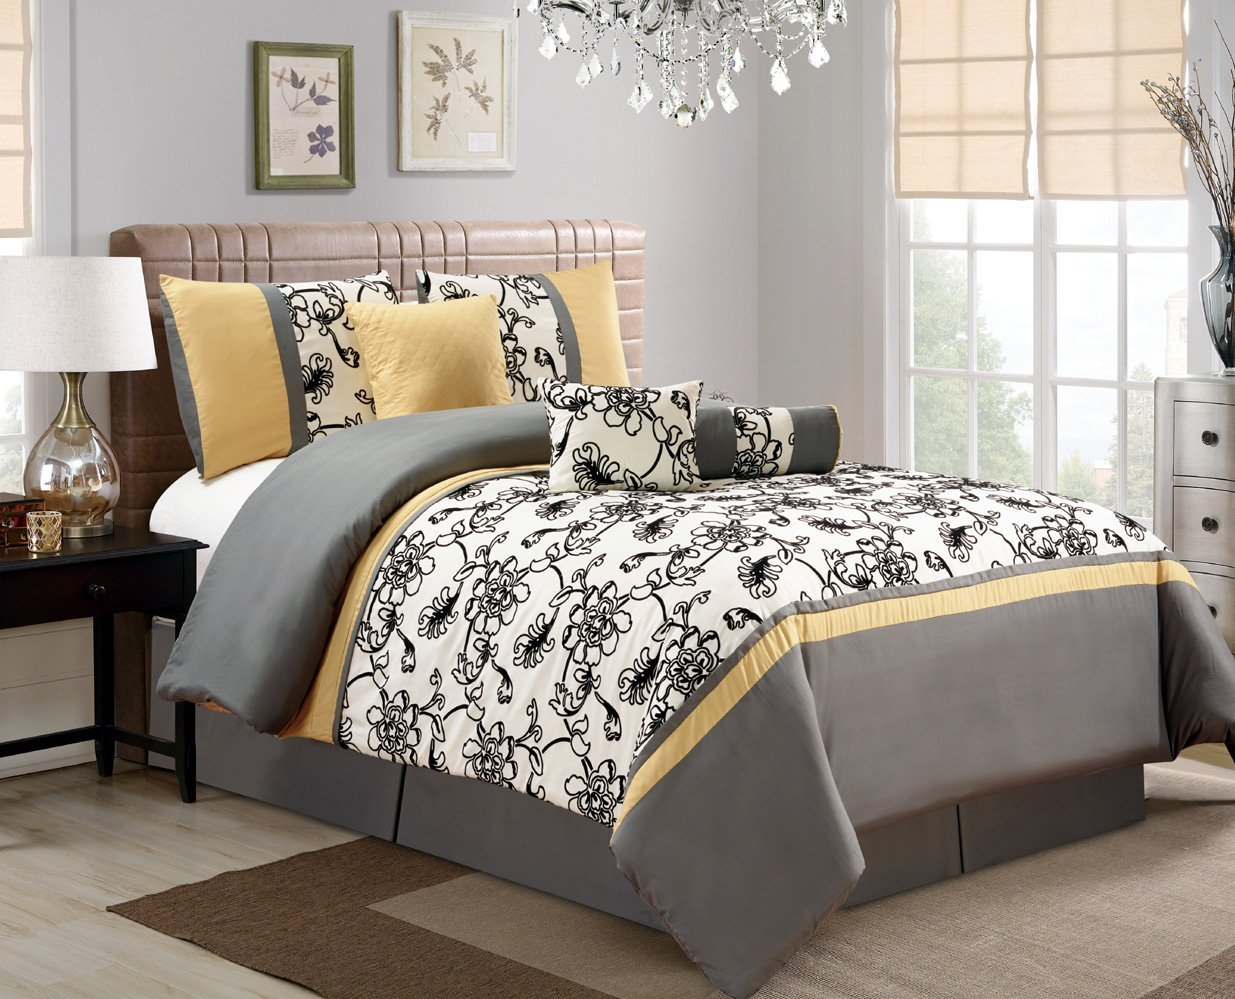 7 Piece Modern Oversize Yellow / Black / White / Grey Floral Comforter set QUEEN Size Bedding